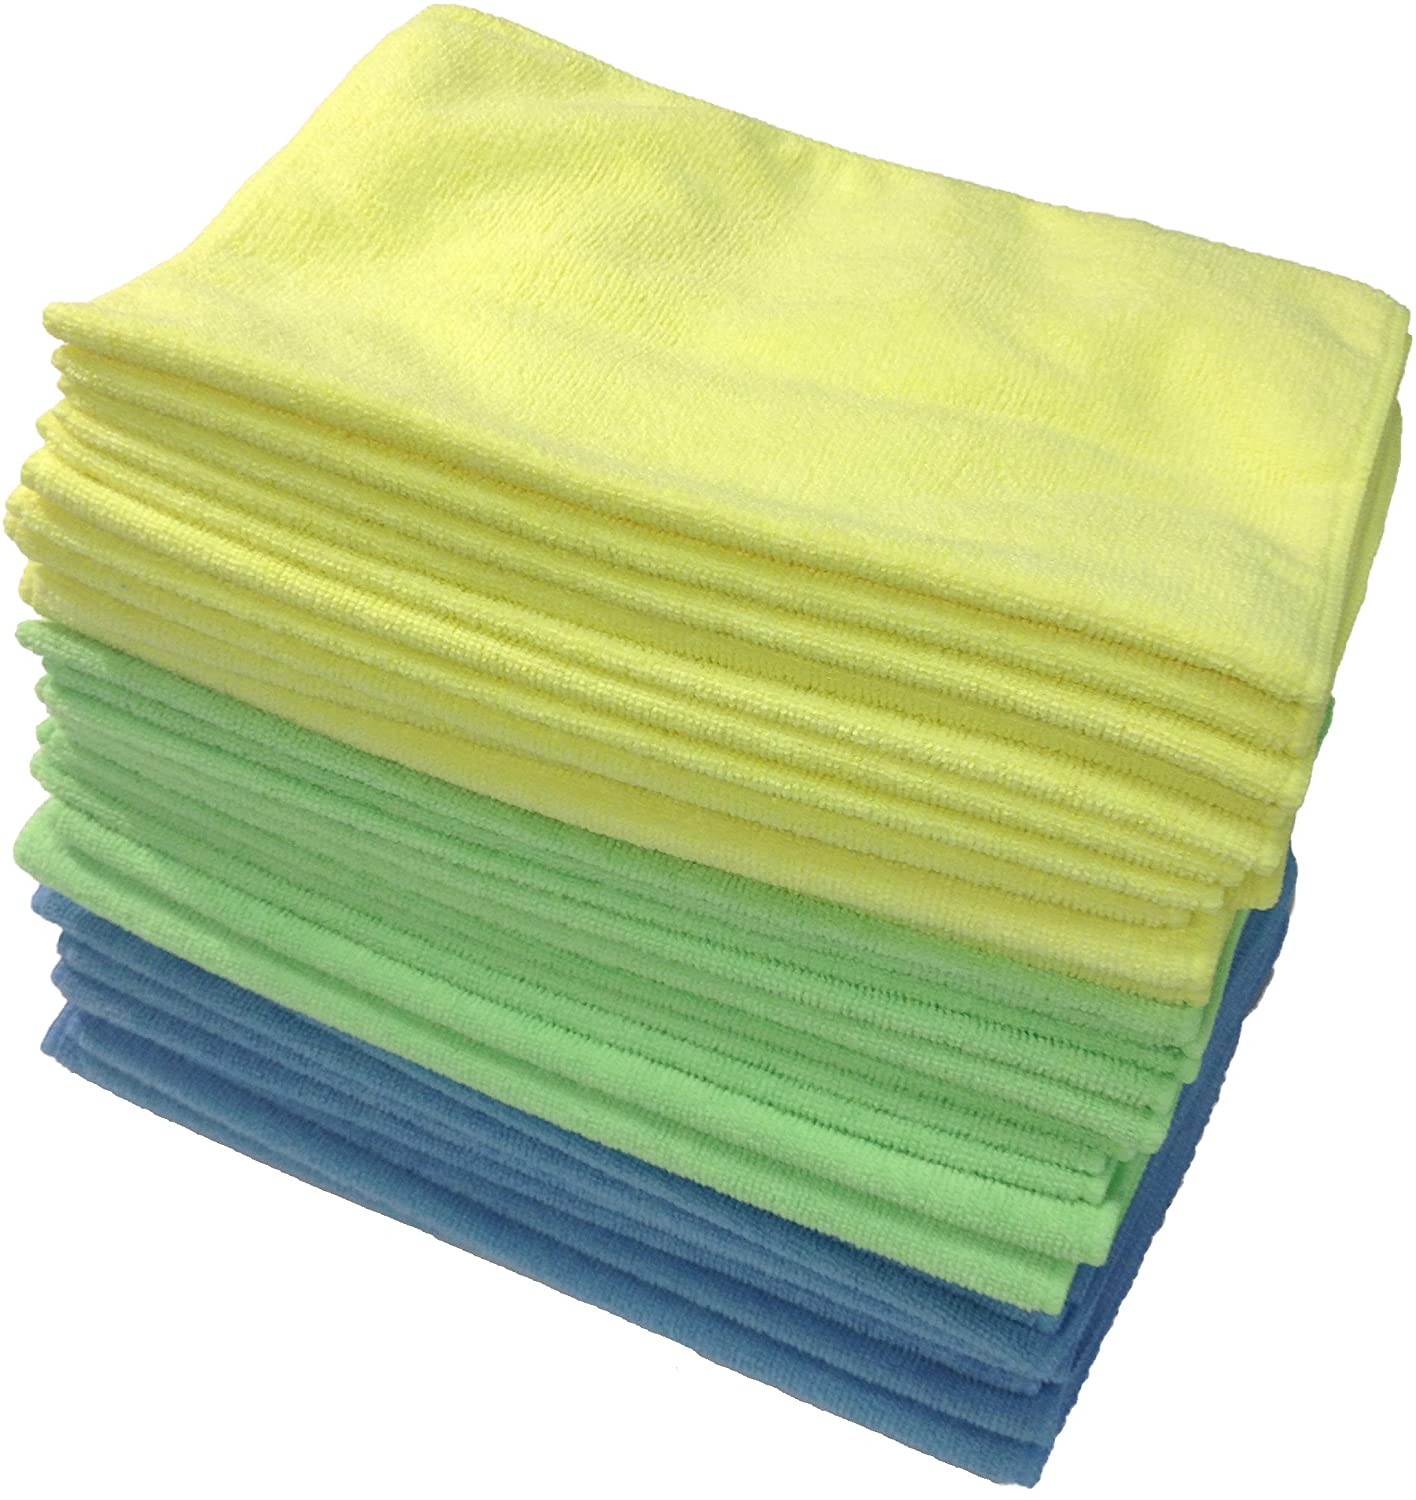 Zwipes Microfiber Cleaning Cloths 36-PK